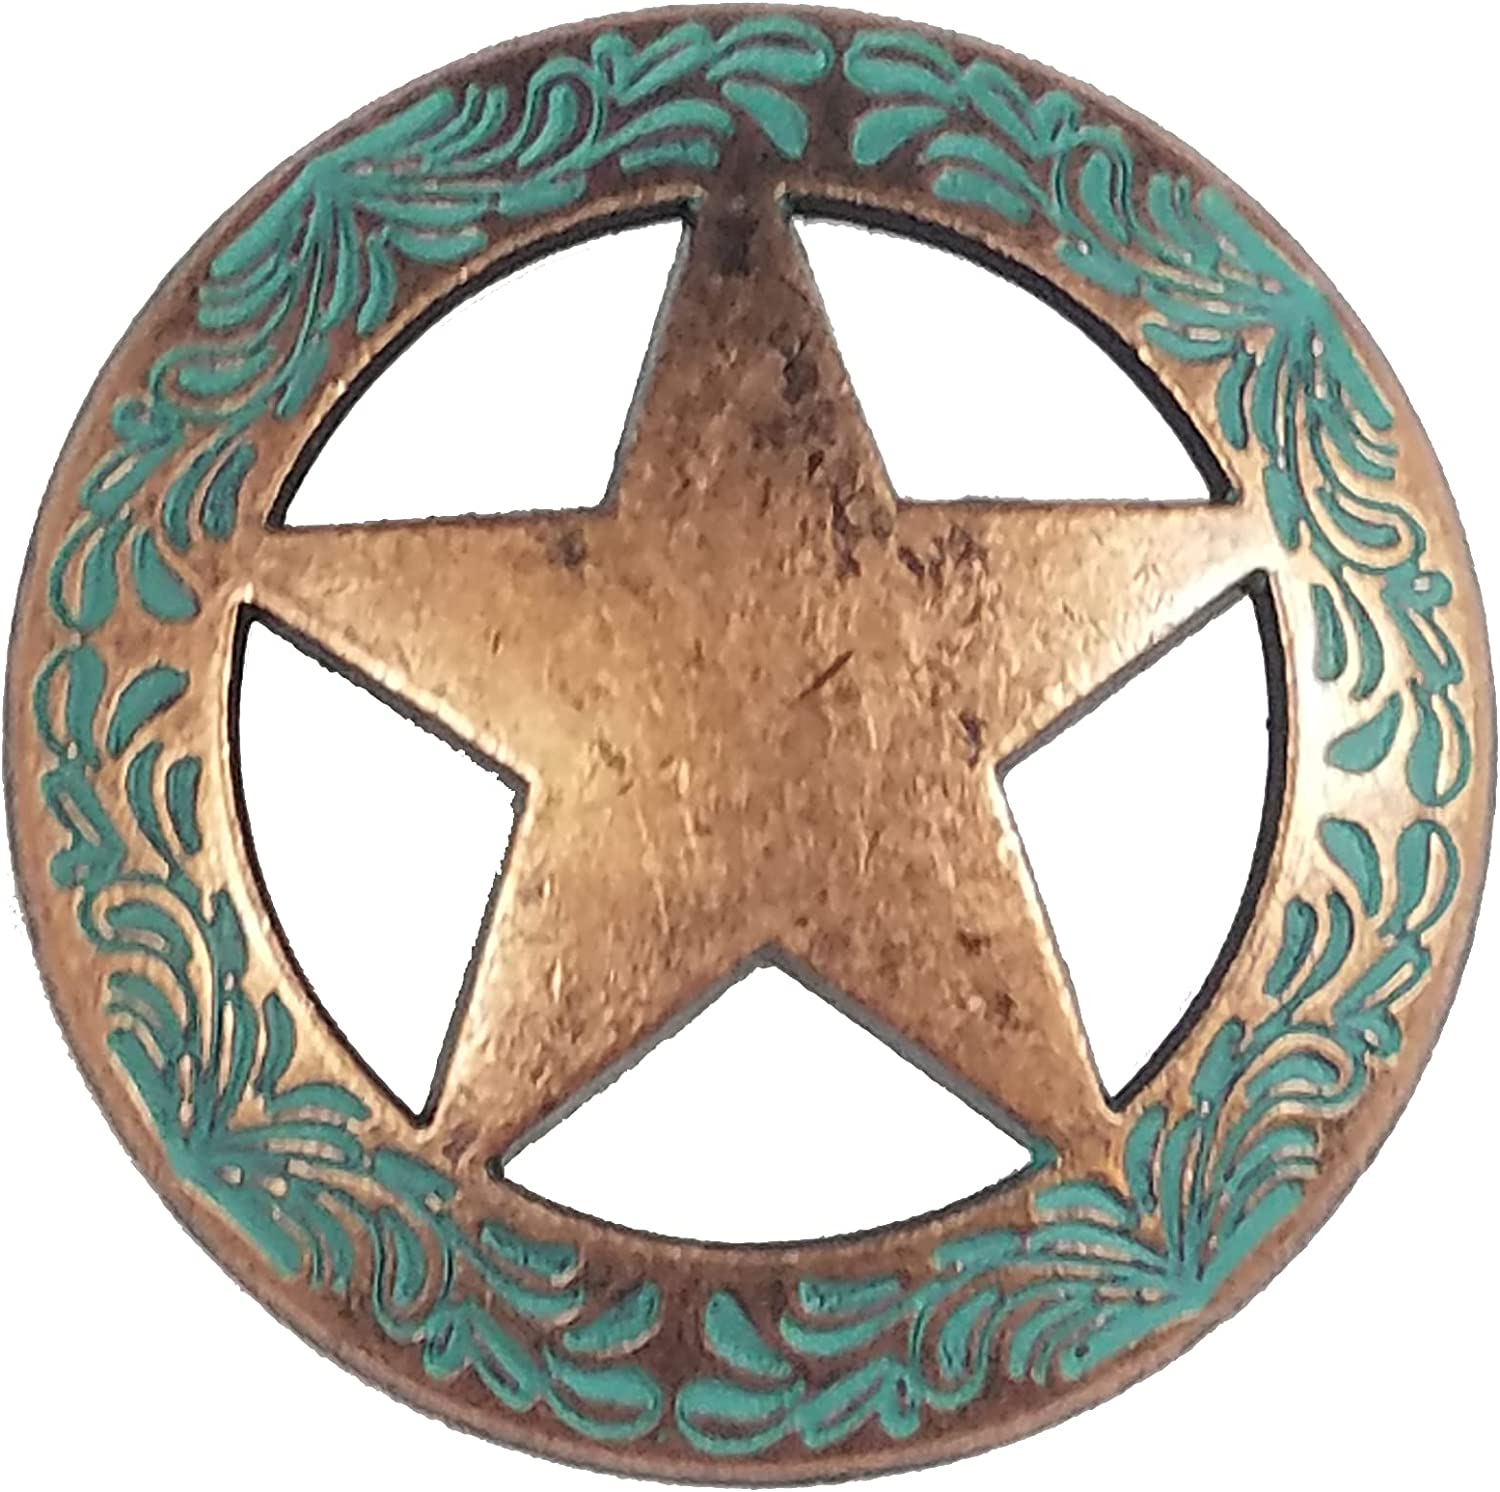 Set of High quality new 24 Fancy Garland Lone Max 58% OFF Wes Drawer Star Cabinet Knobs Pulls